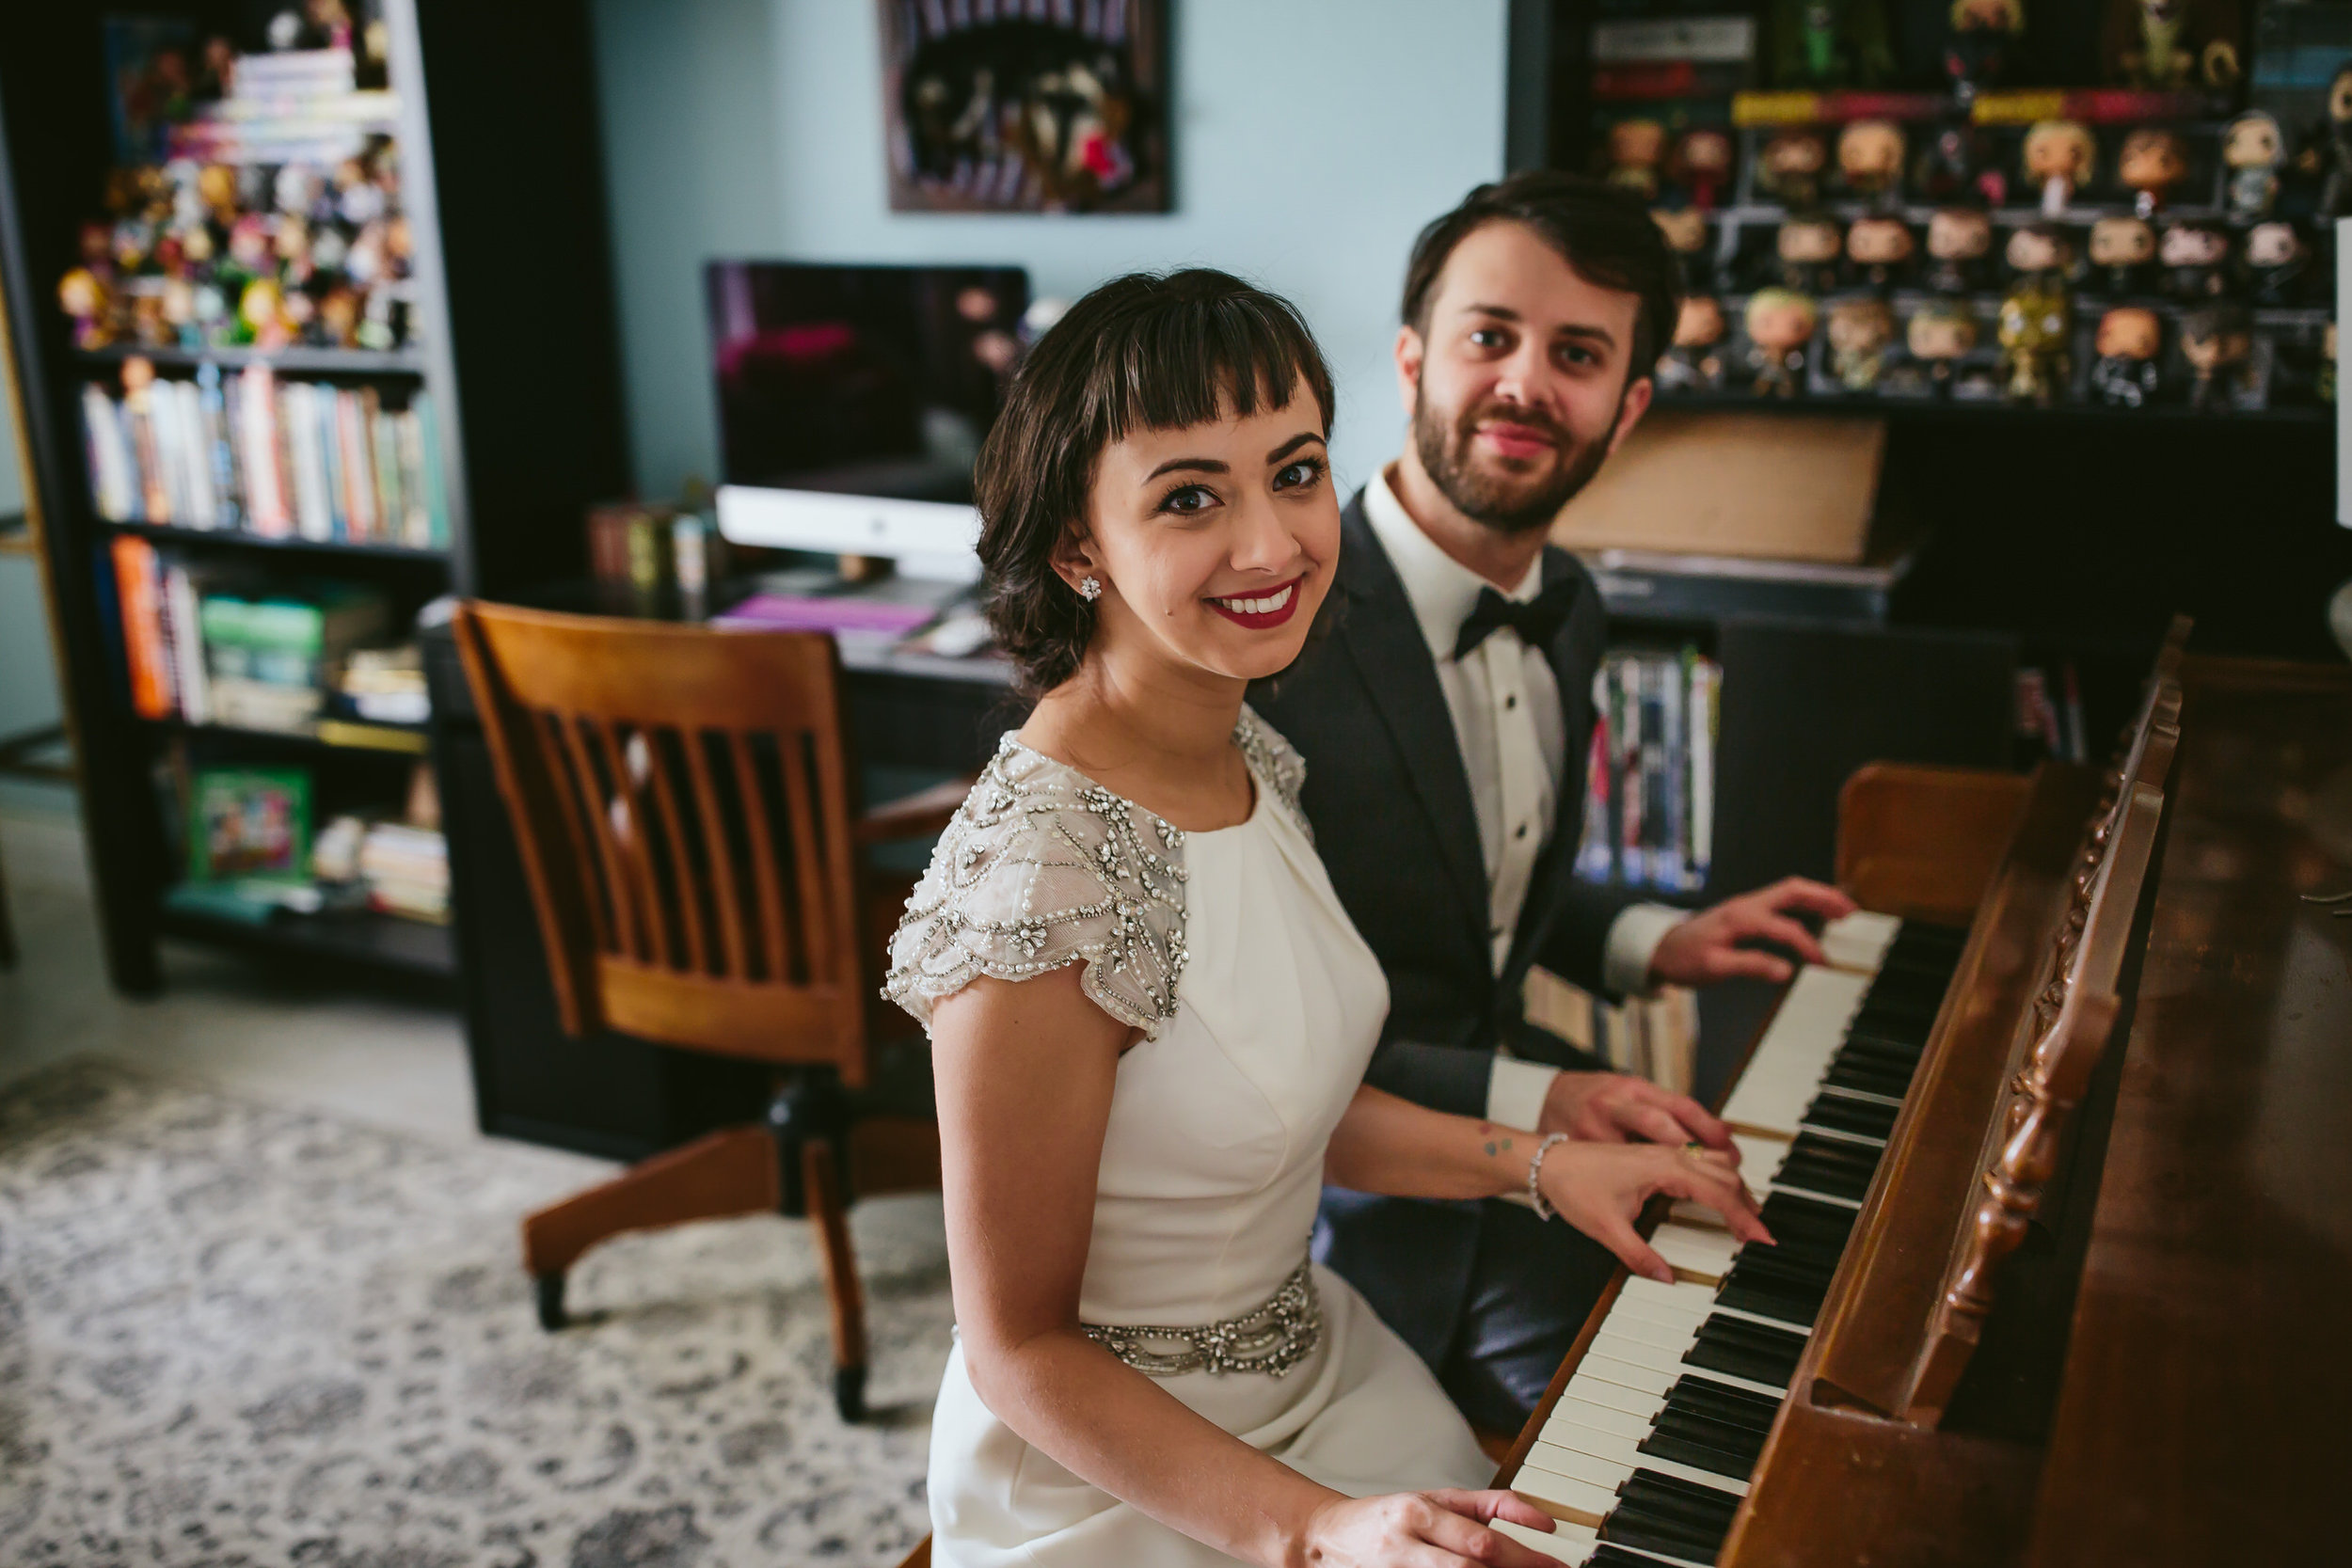 bride_and_groom_in_home_session_wedding_fort_lauderdale_photographer_steph_lynn_photo-11.jpg